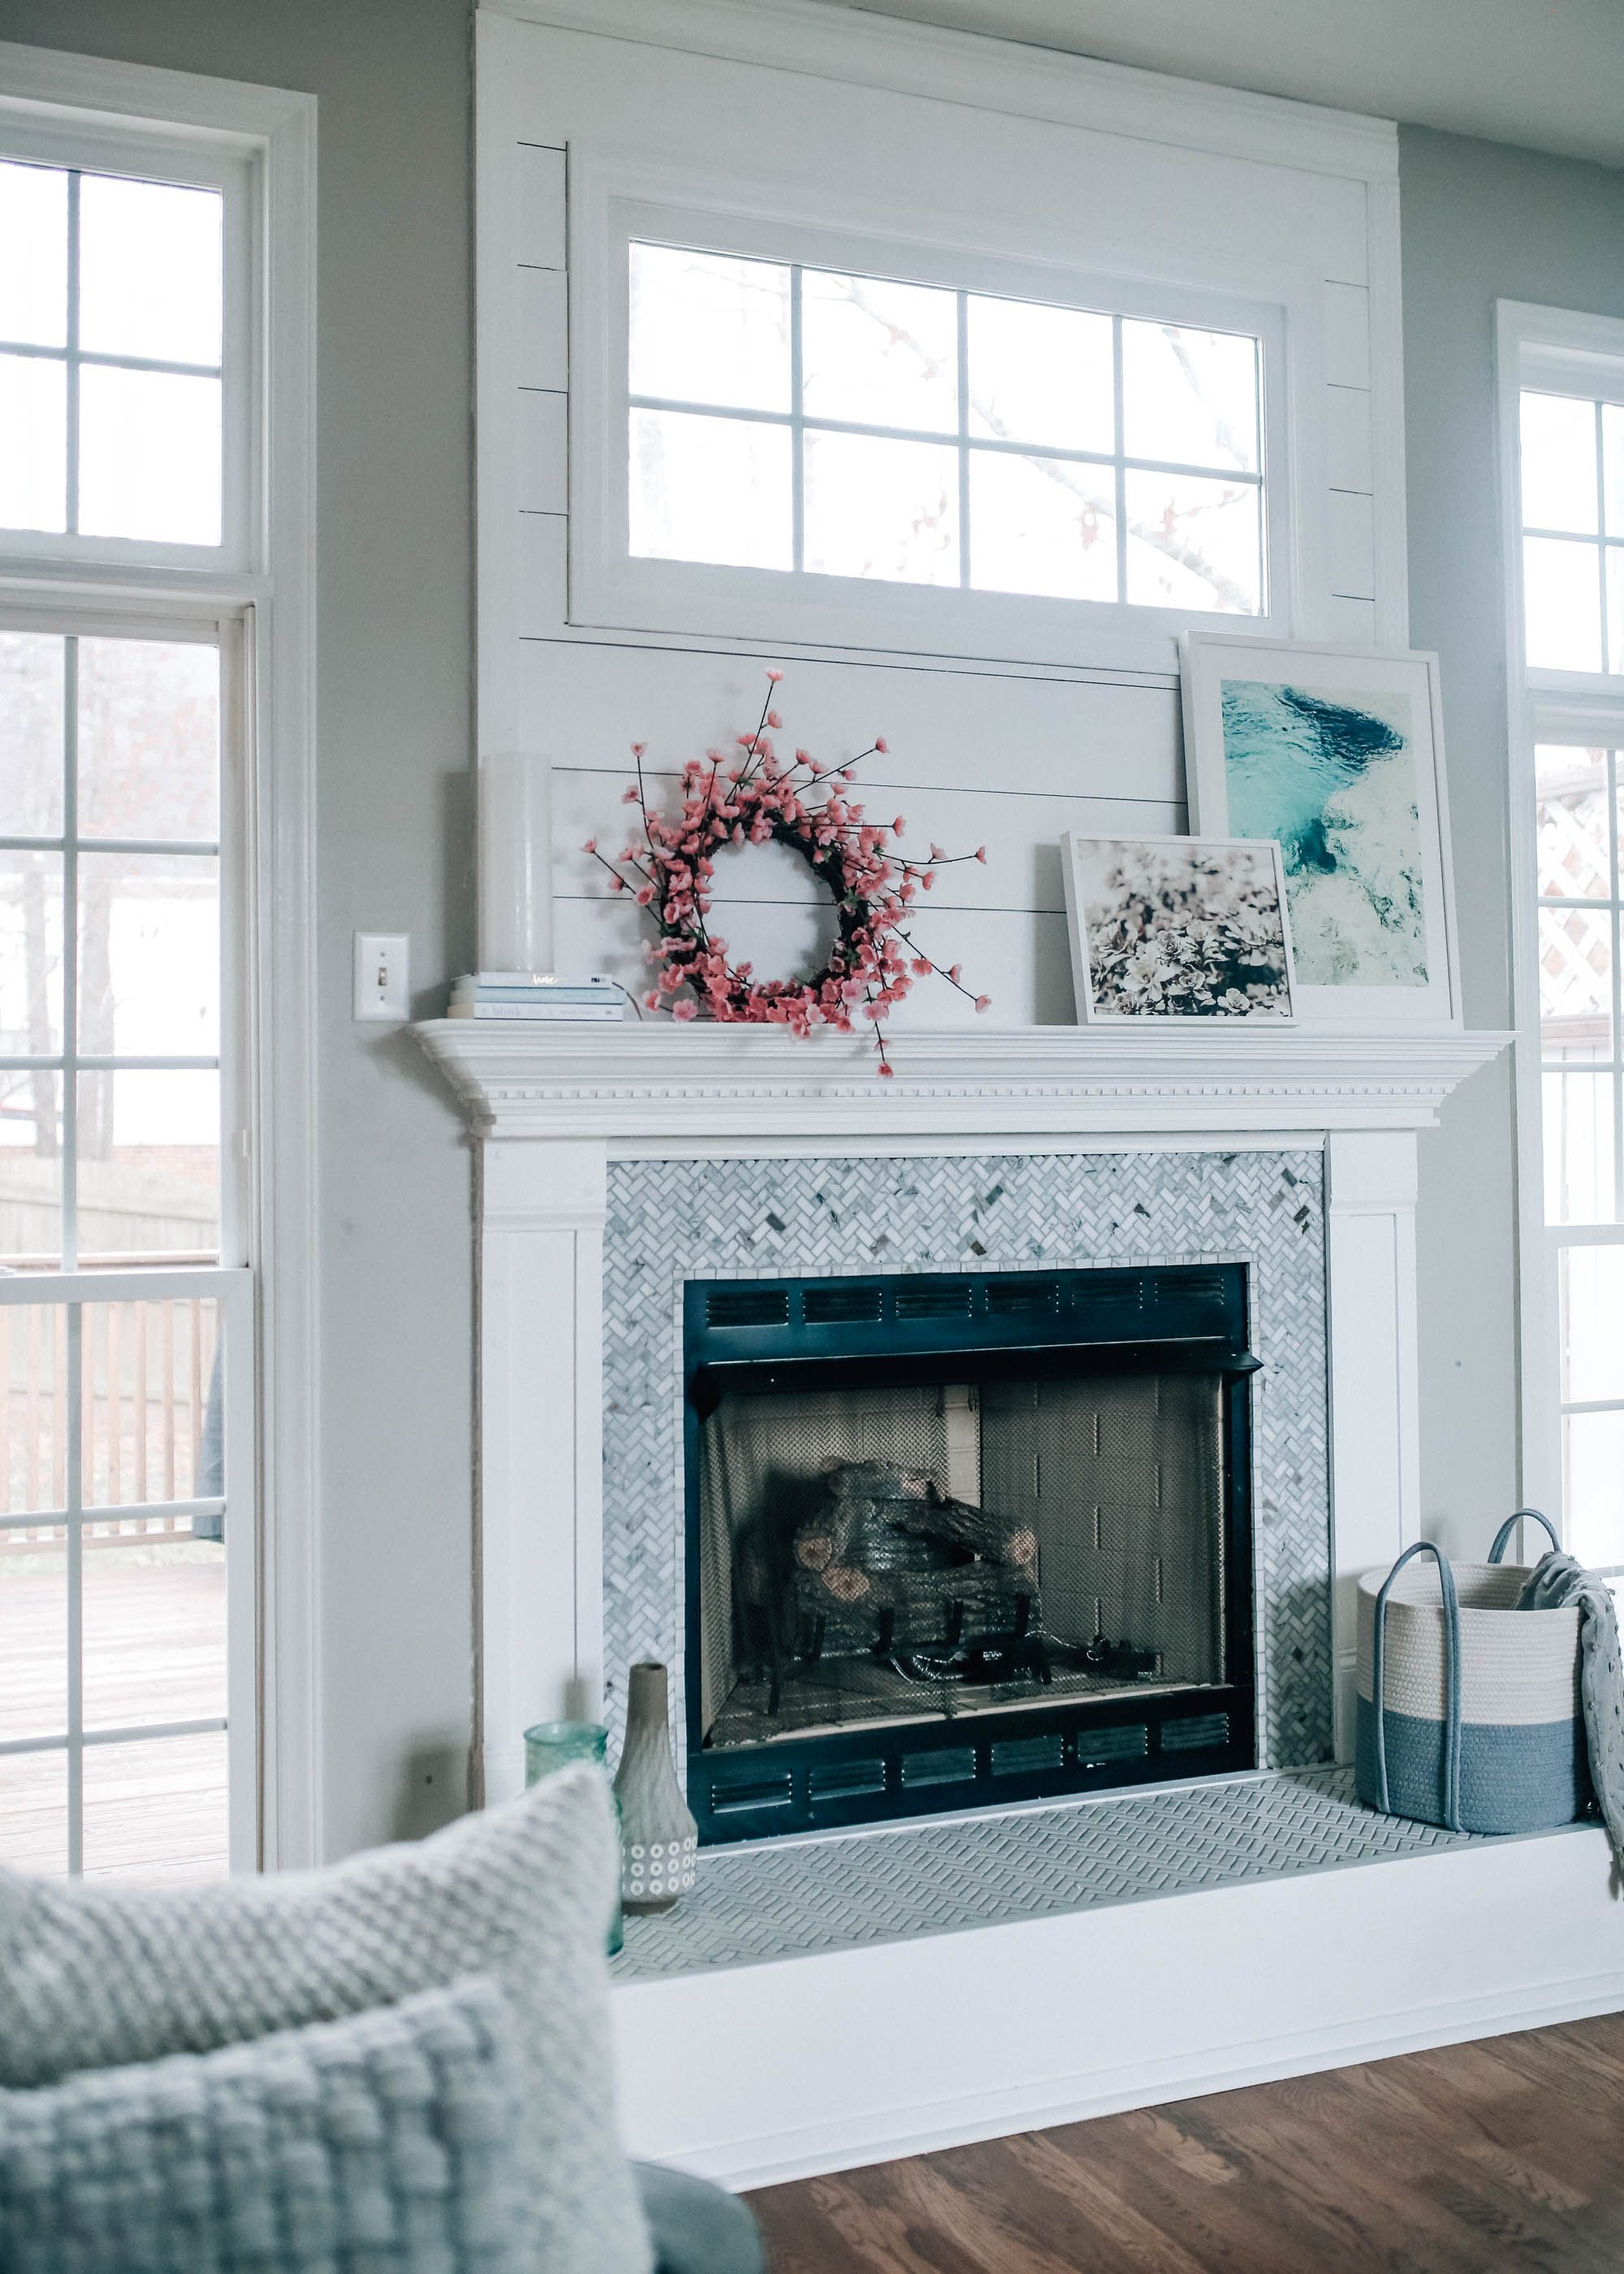 Home Depot White Fireplace Beautiful Fireplace Makeover Reveal with the Home Depot X Pretty In